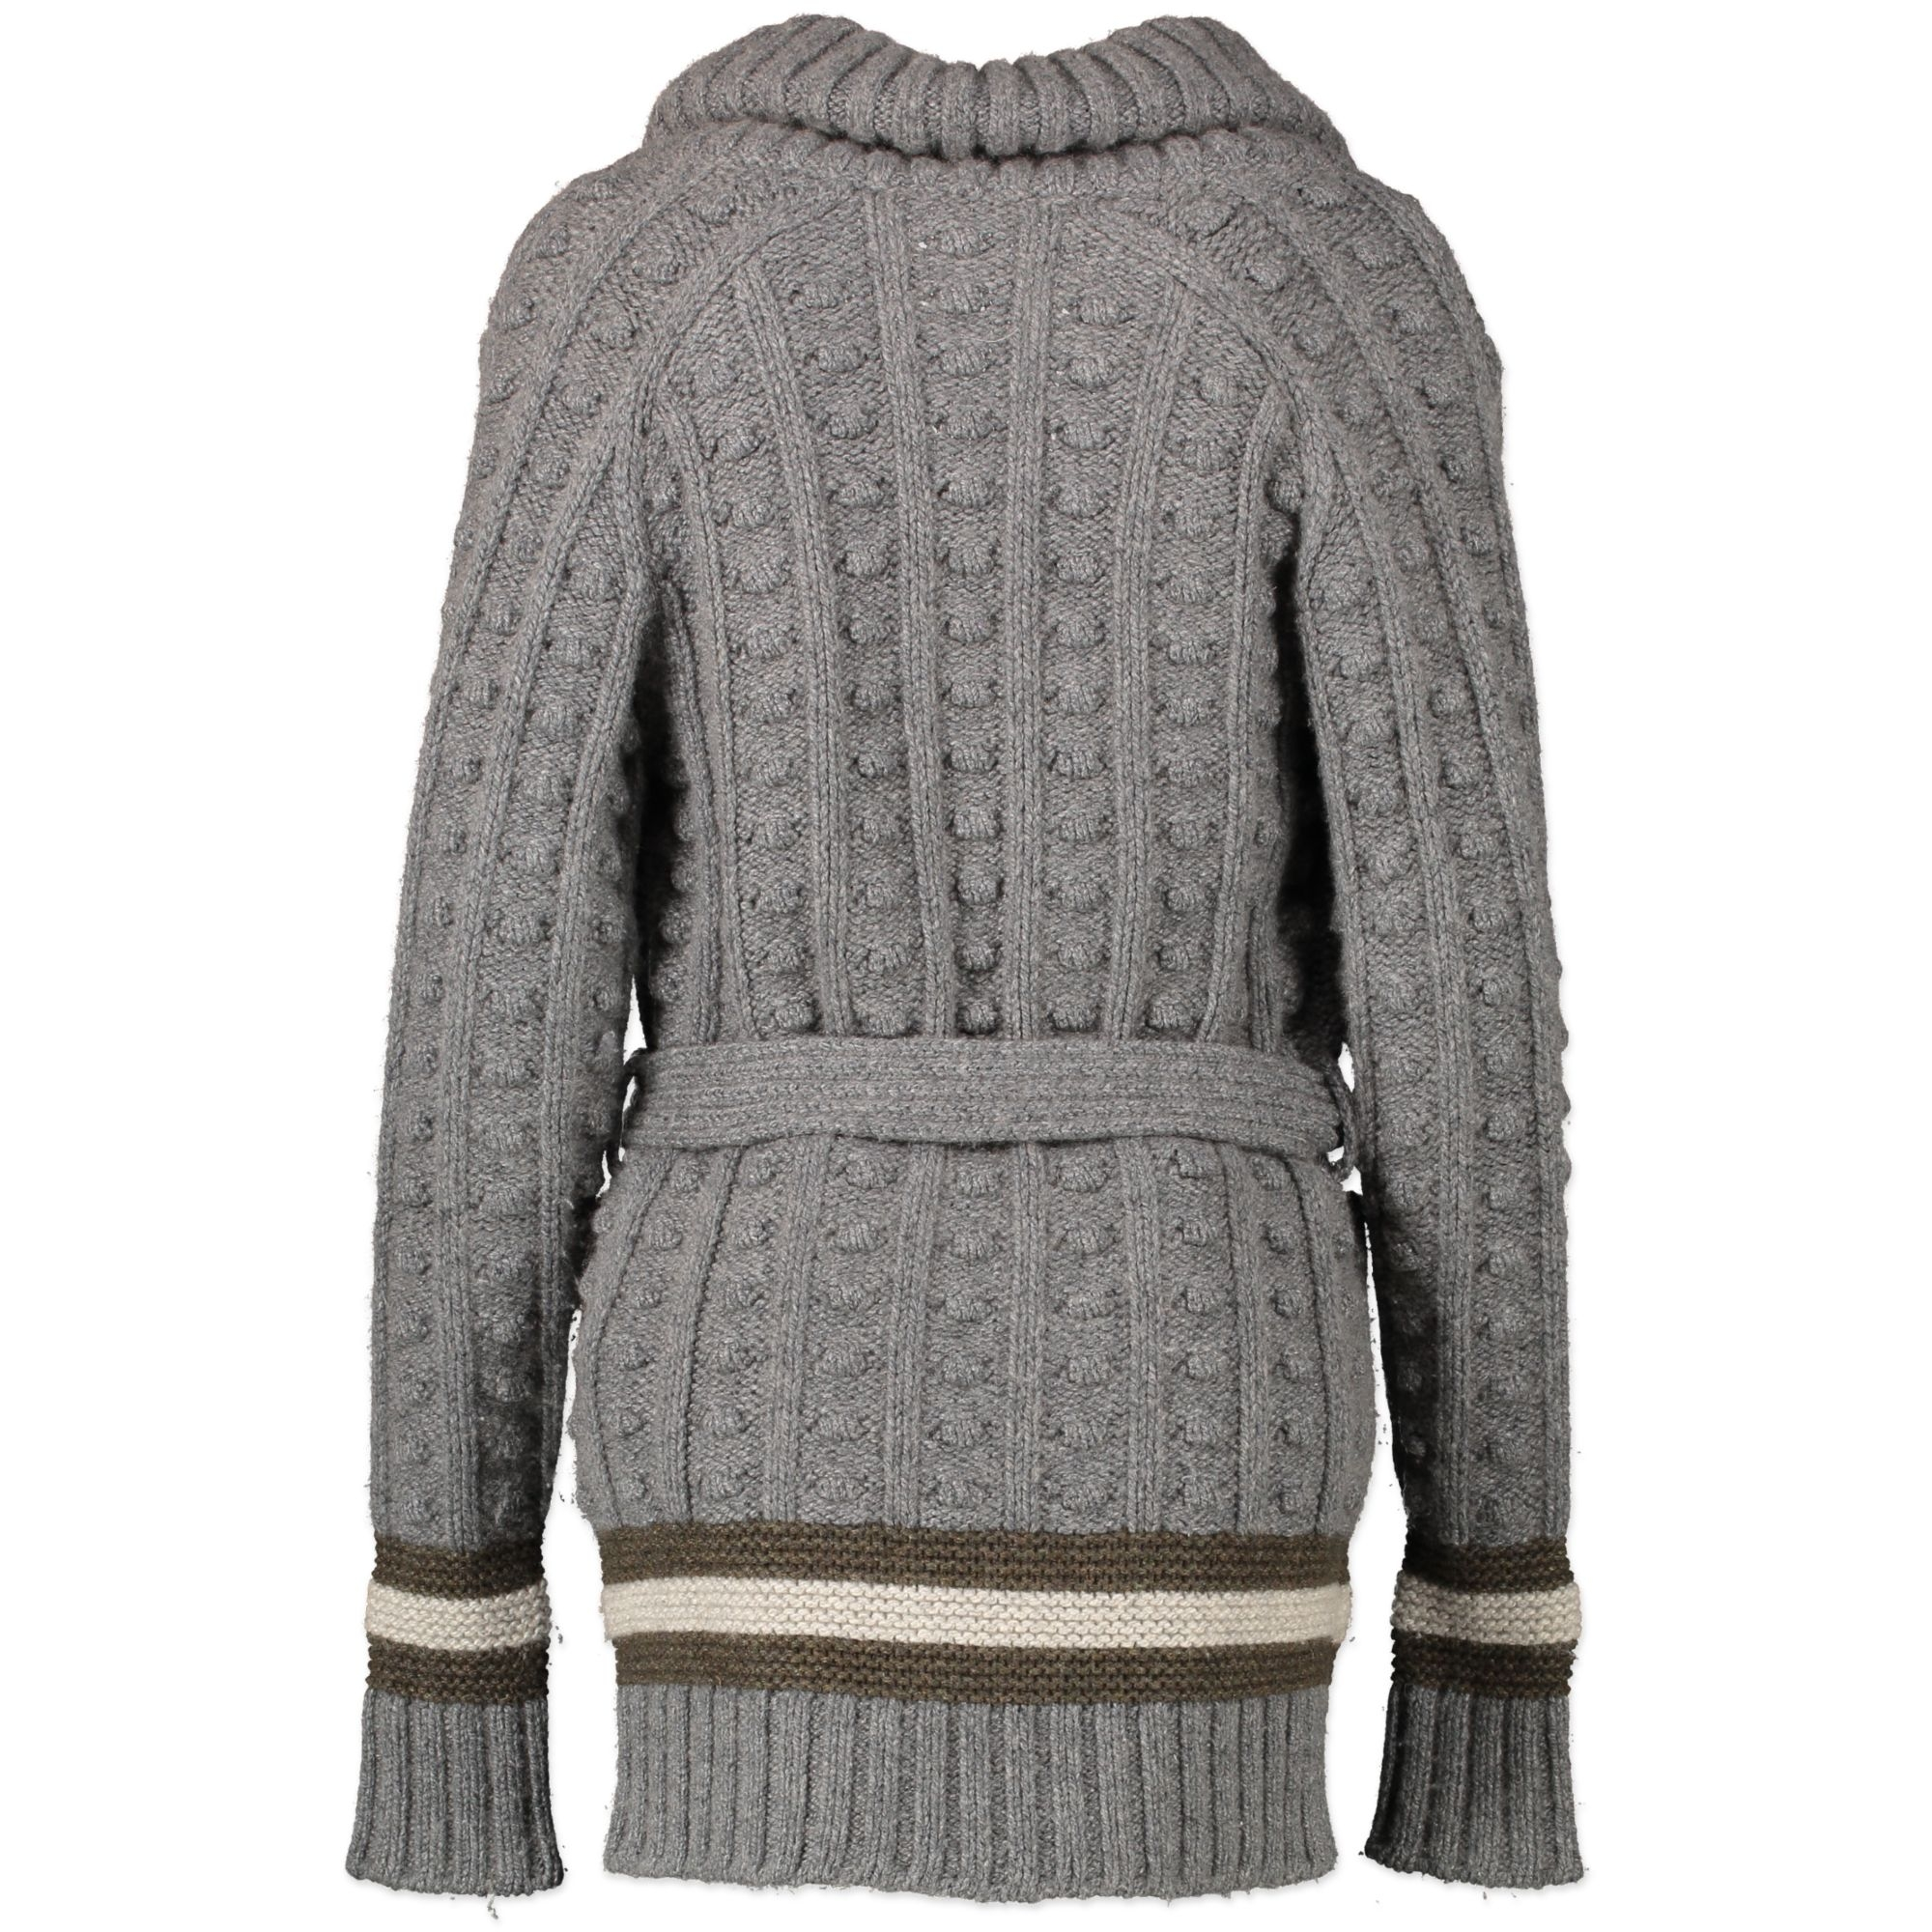 Gucci Grey Cashmere Cardigan With Belt - Size XS